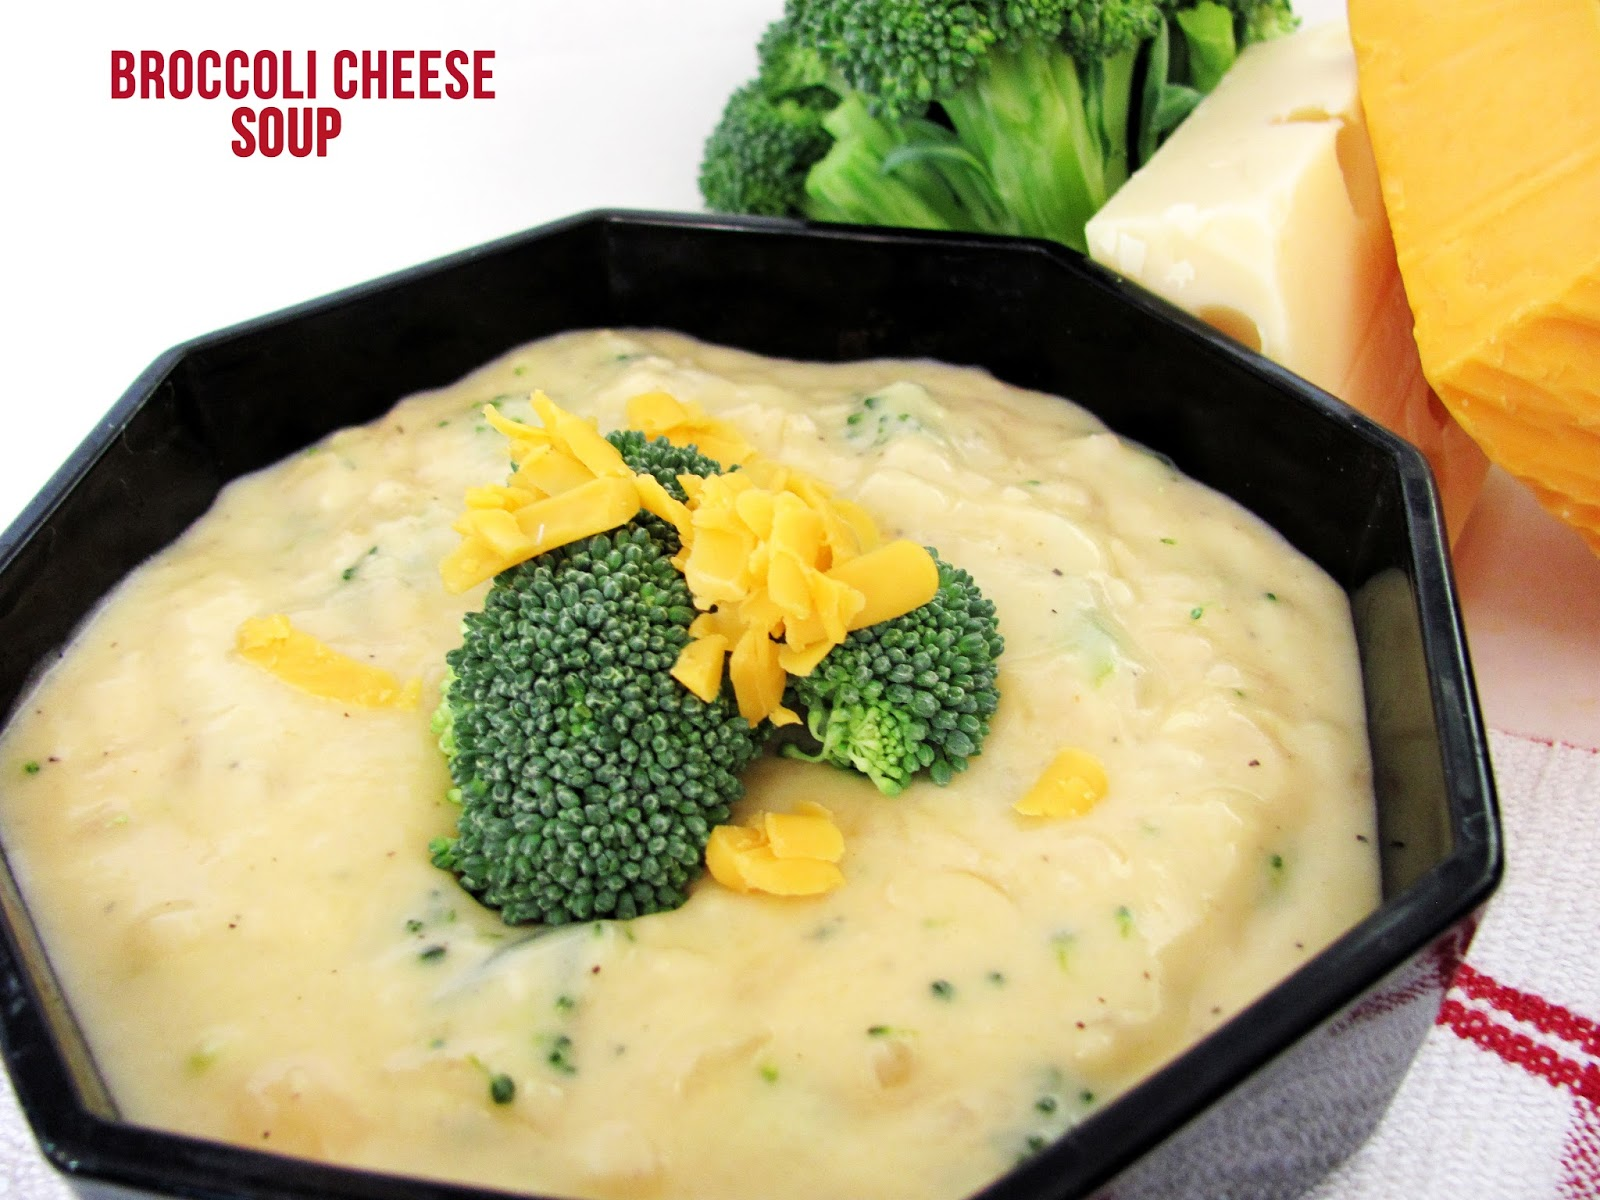 Feeding My Giant: Broccoli Cheese Soup